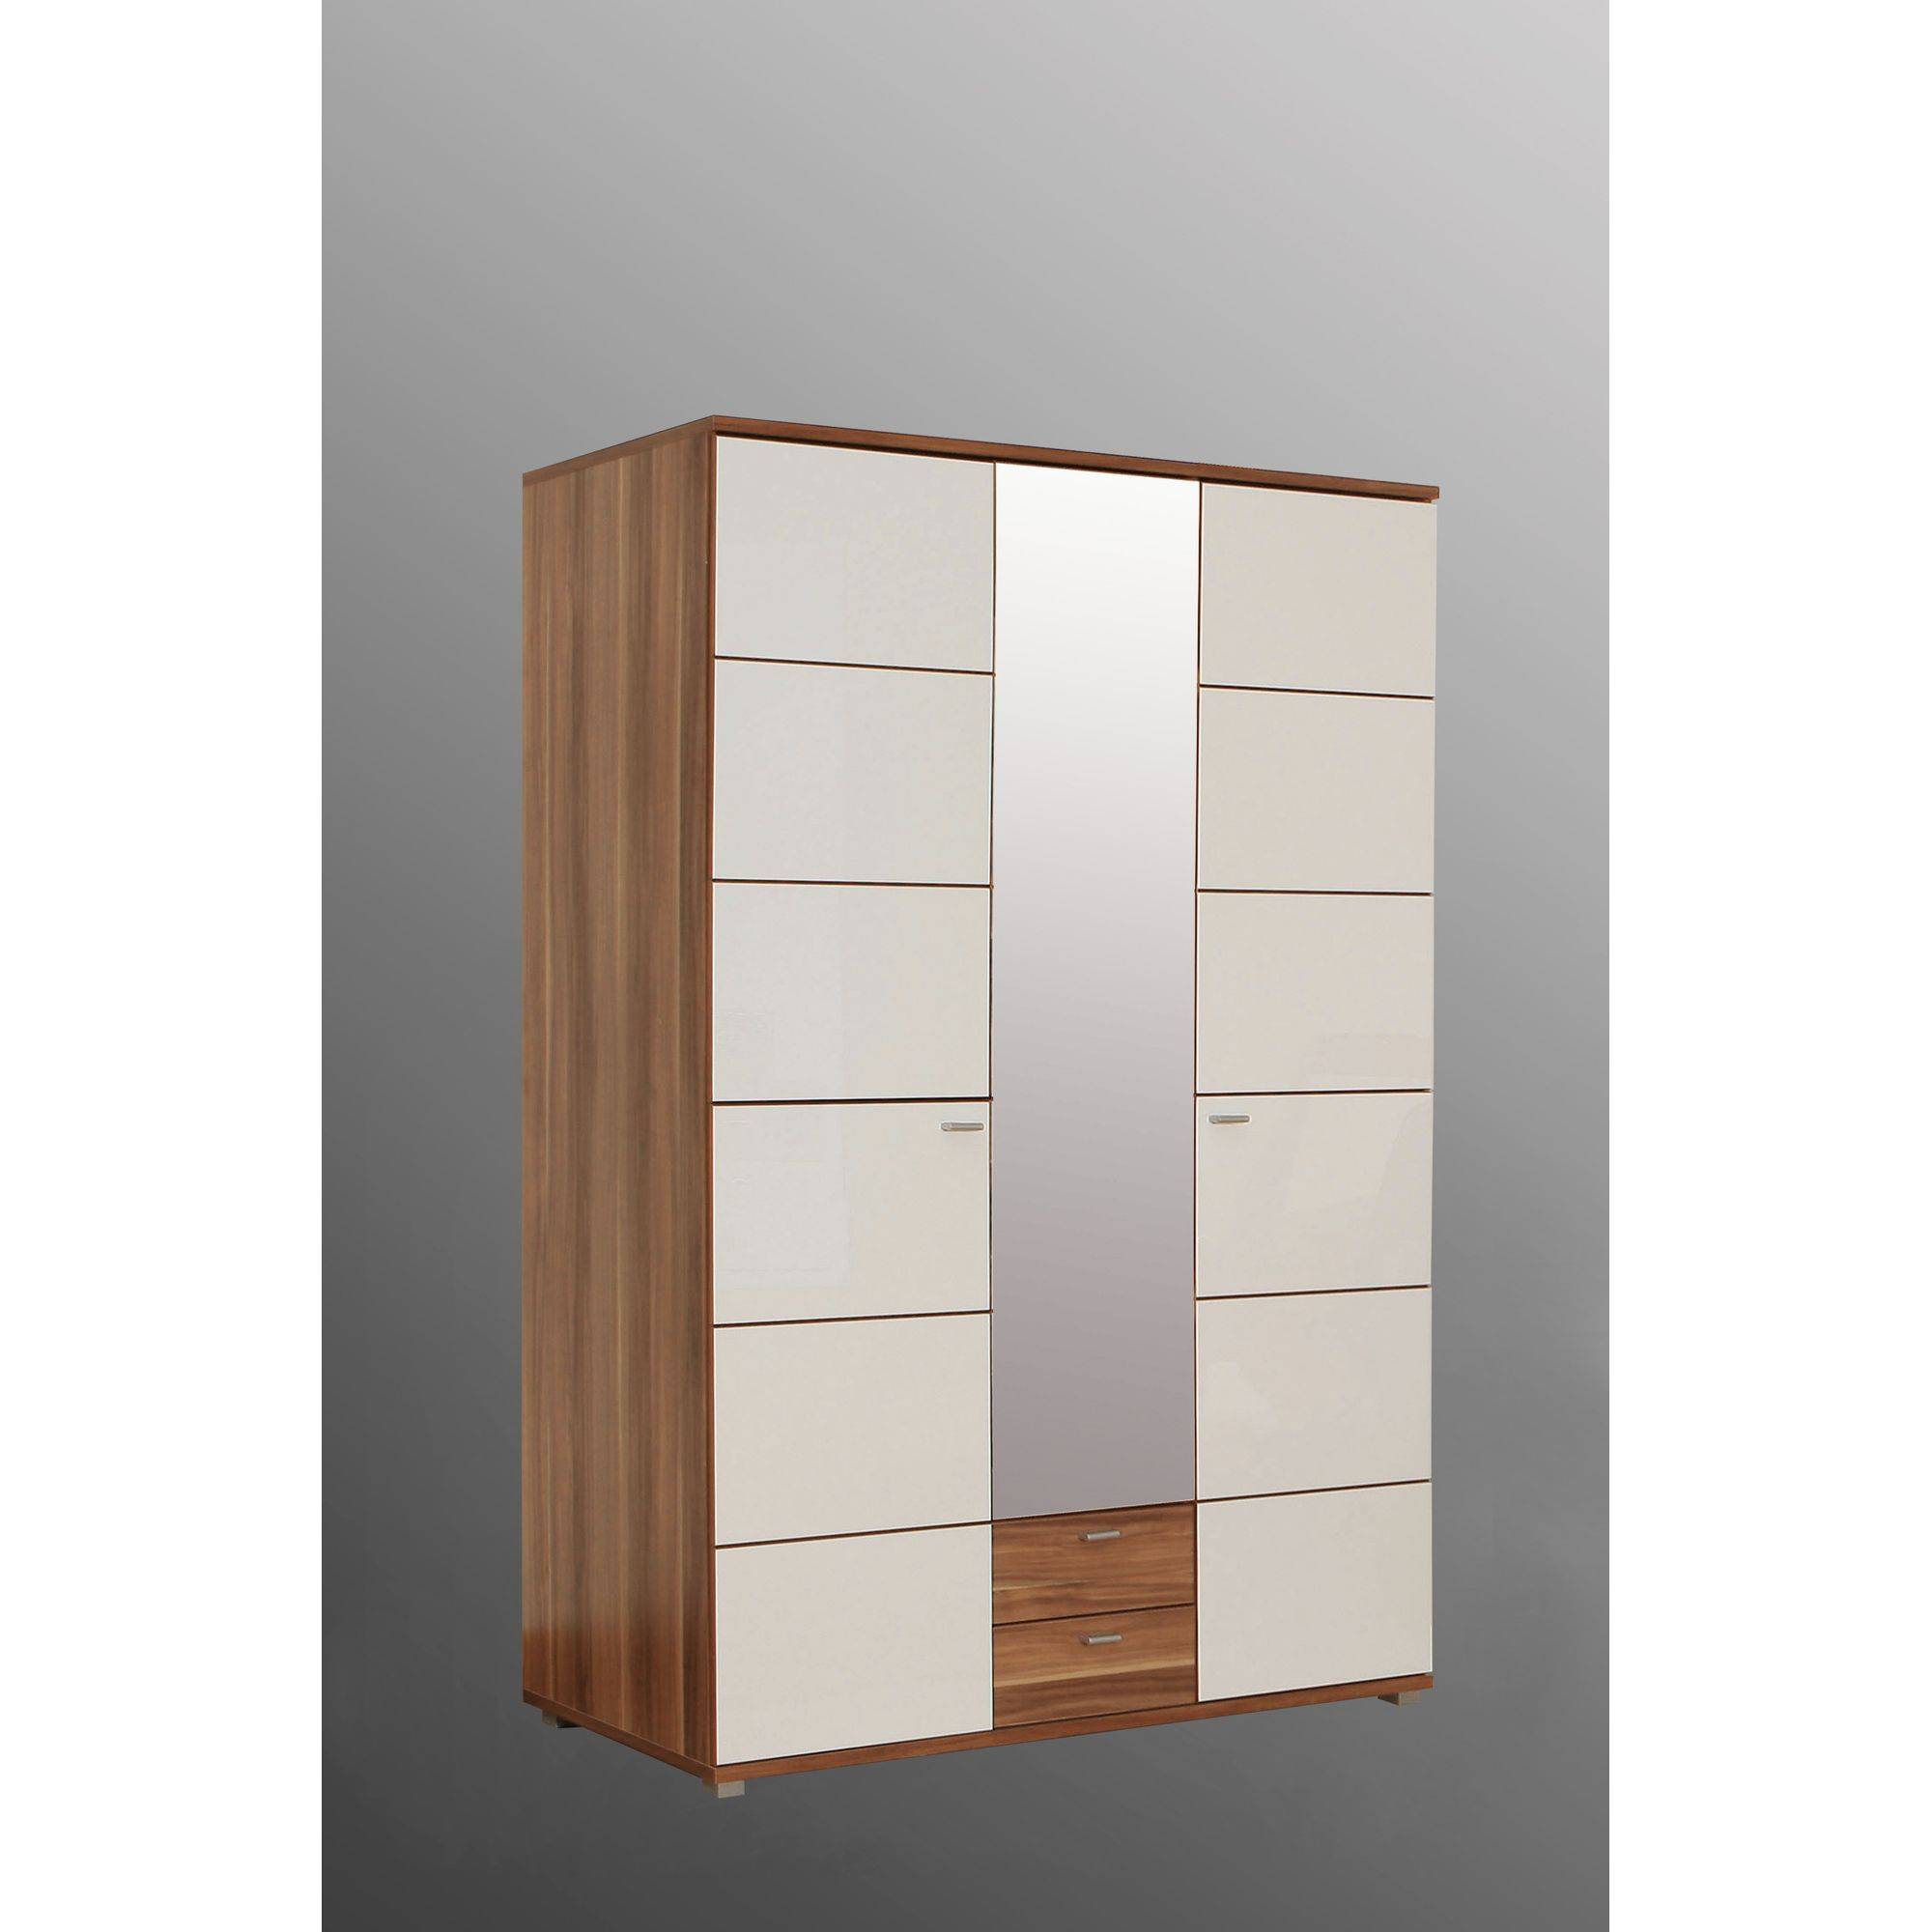 Amos Mann furniture Valencia 3 Door Wardrobe - White at Tesco Direct